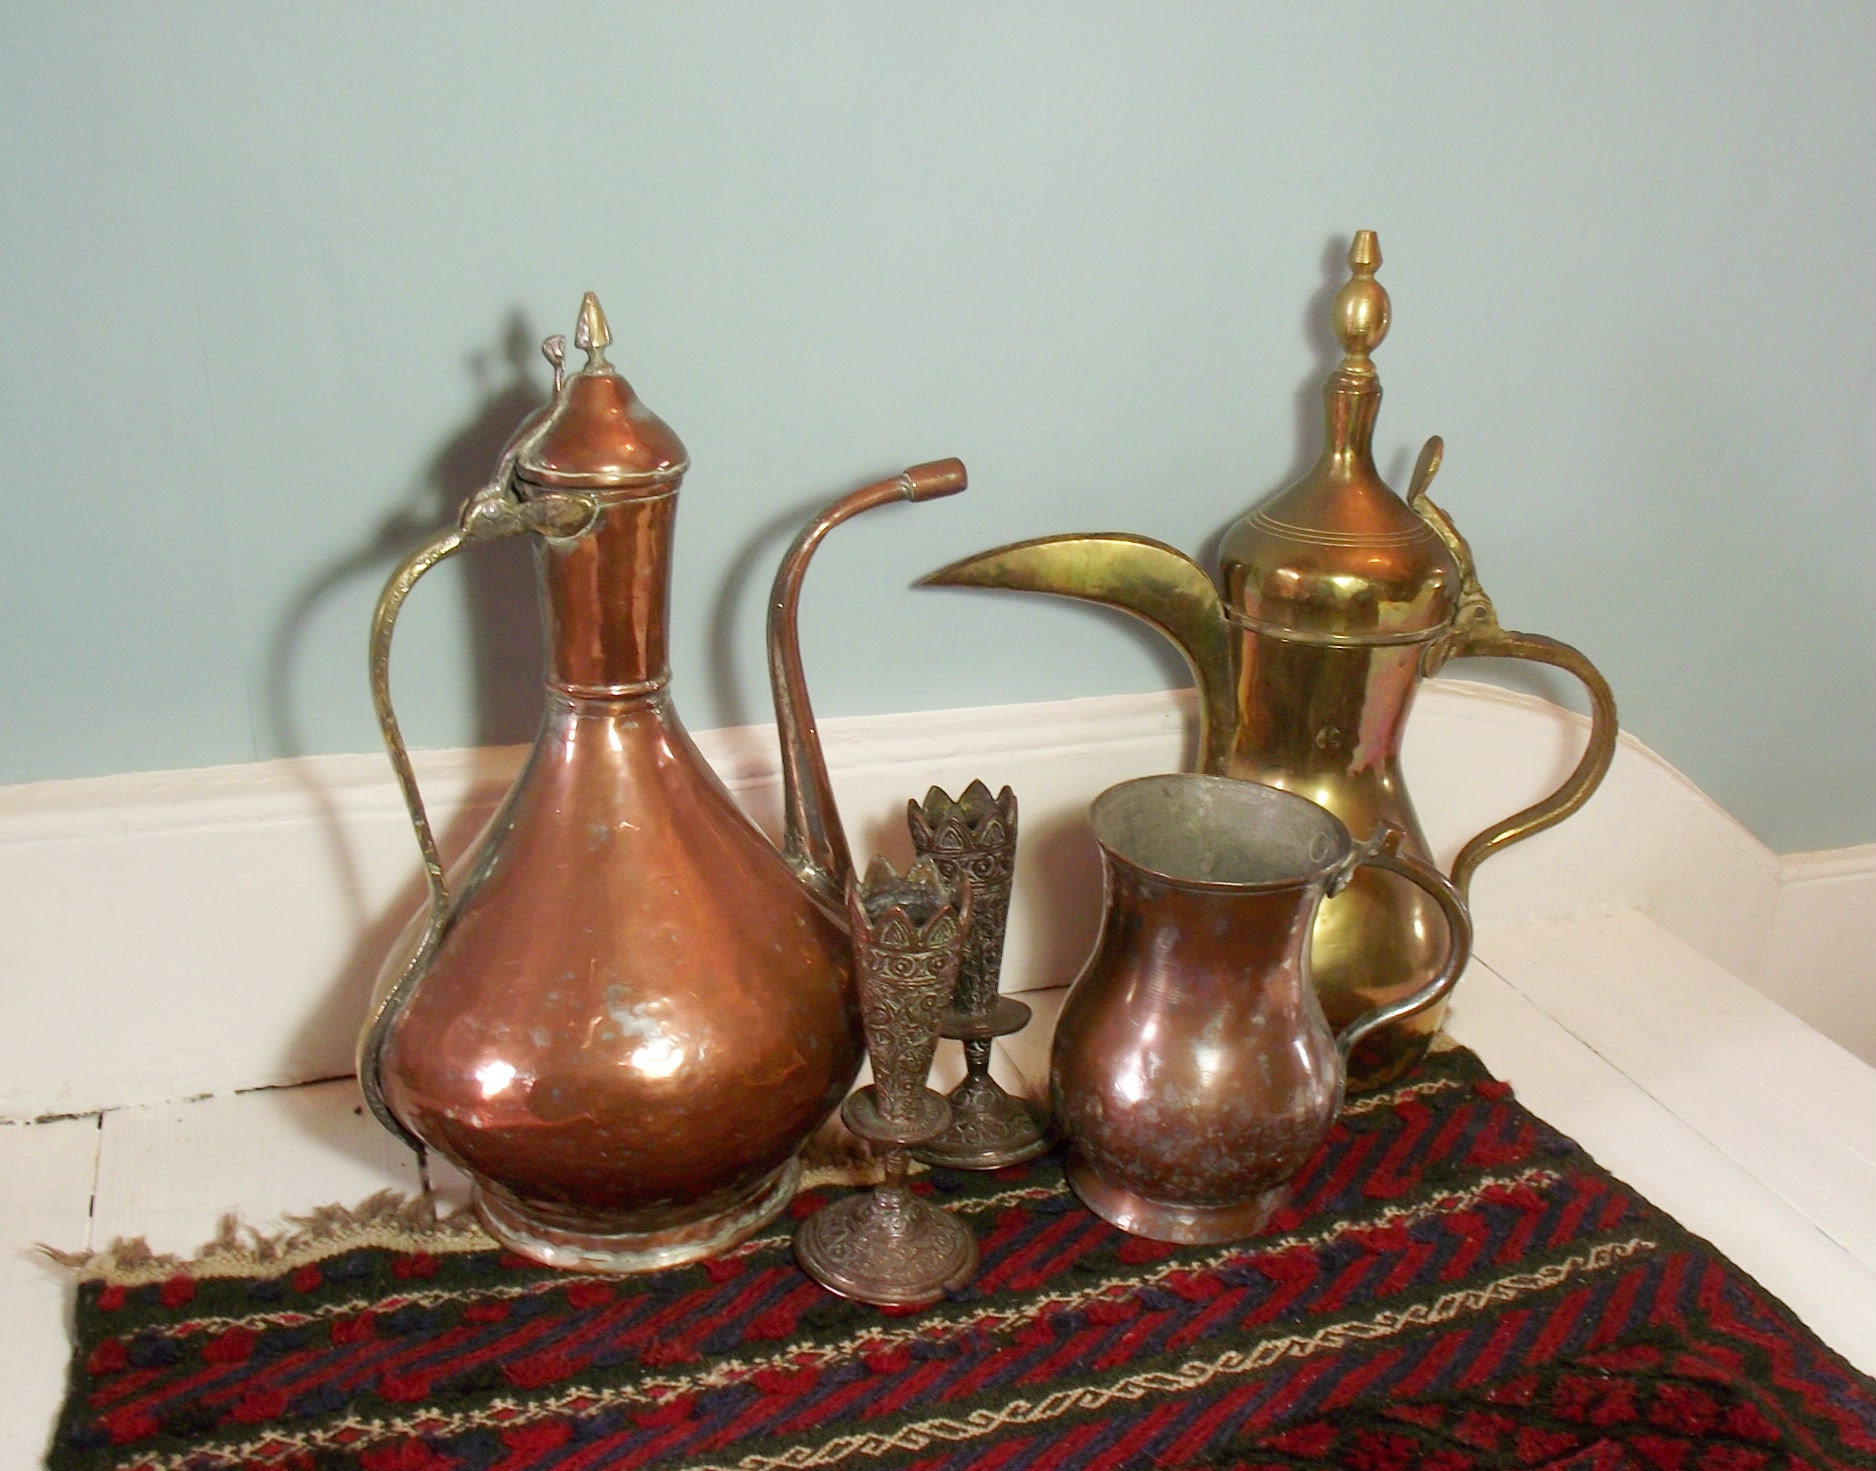 Collection of bohemian decor available in the Suki and Polly shop: an antique middle eastern copper coffee pot, an Arabic brass coffee pot, antique Kashmiri Vases and an antique copper tankard.